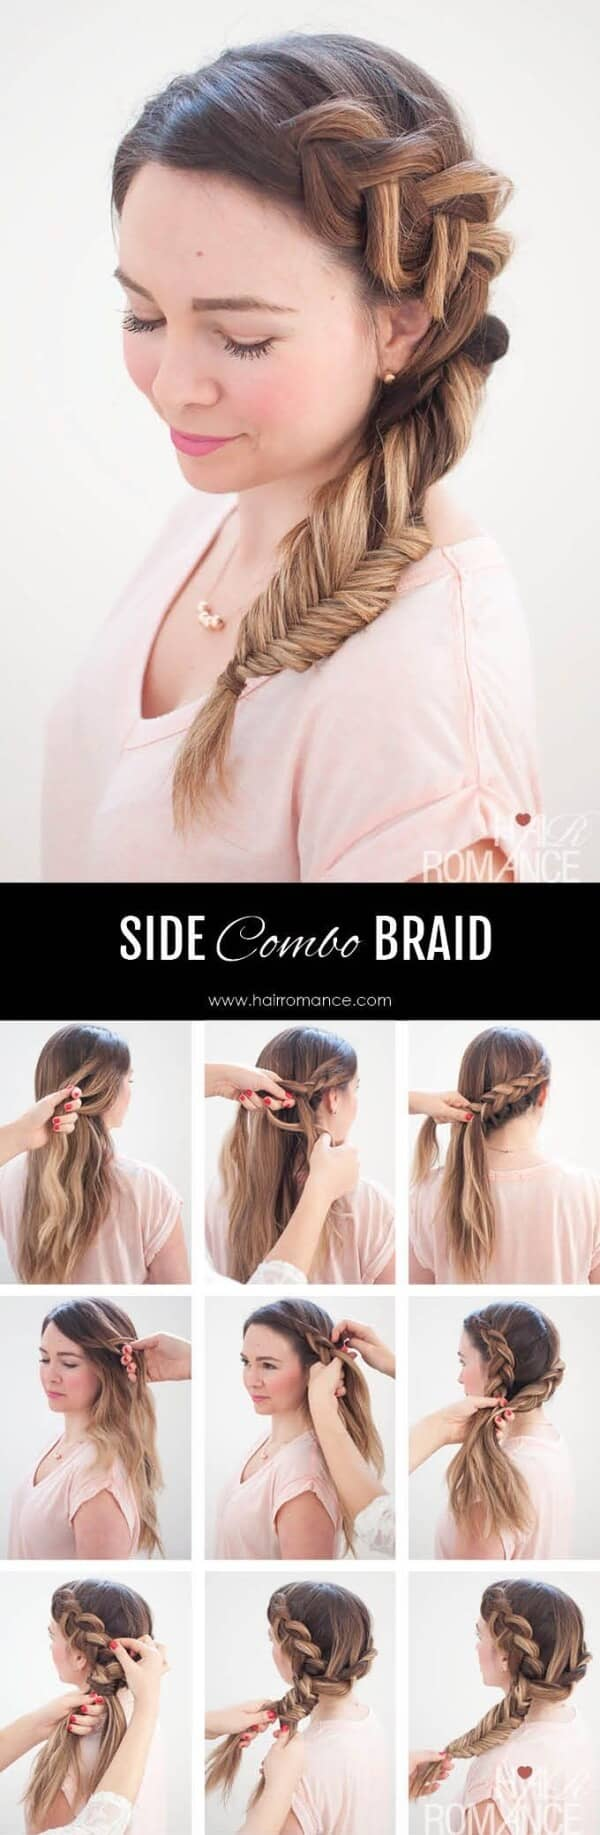 Side Dutch Braid in Kombination mit Fischschwanz